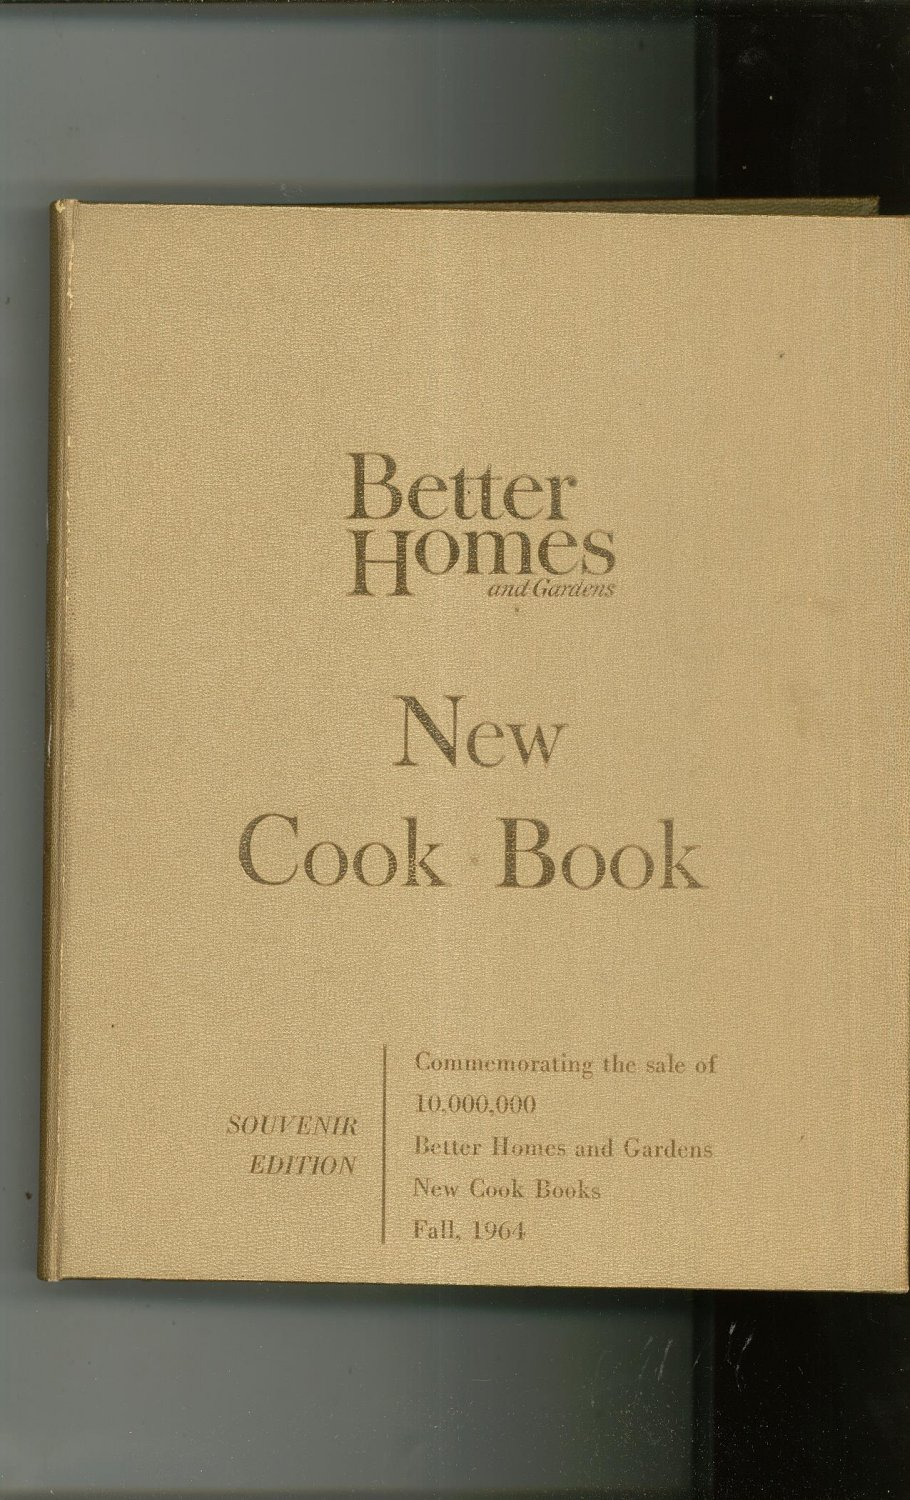 Better homes and gardens new cook book gold souvenir edition cookbook vintage Better homes and gardens house painting tool